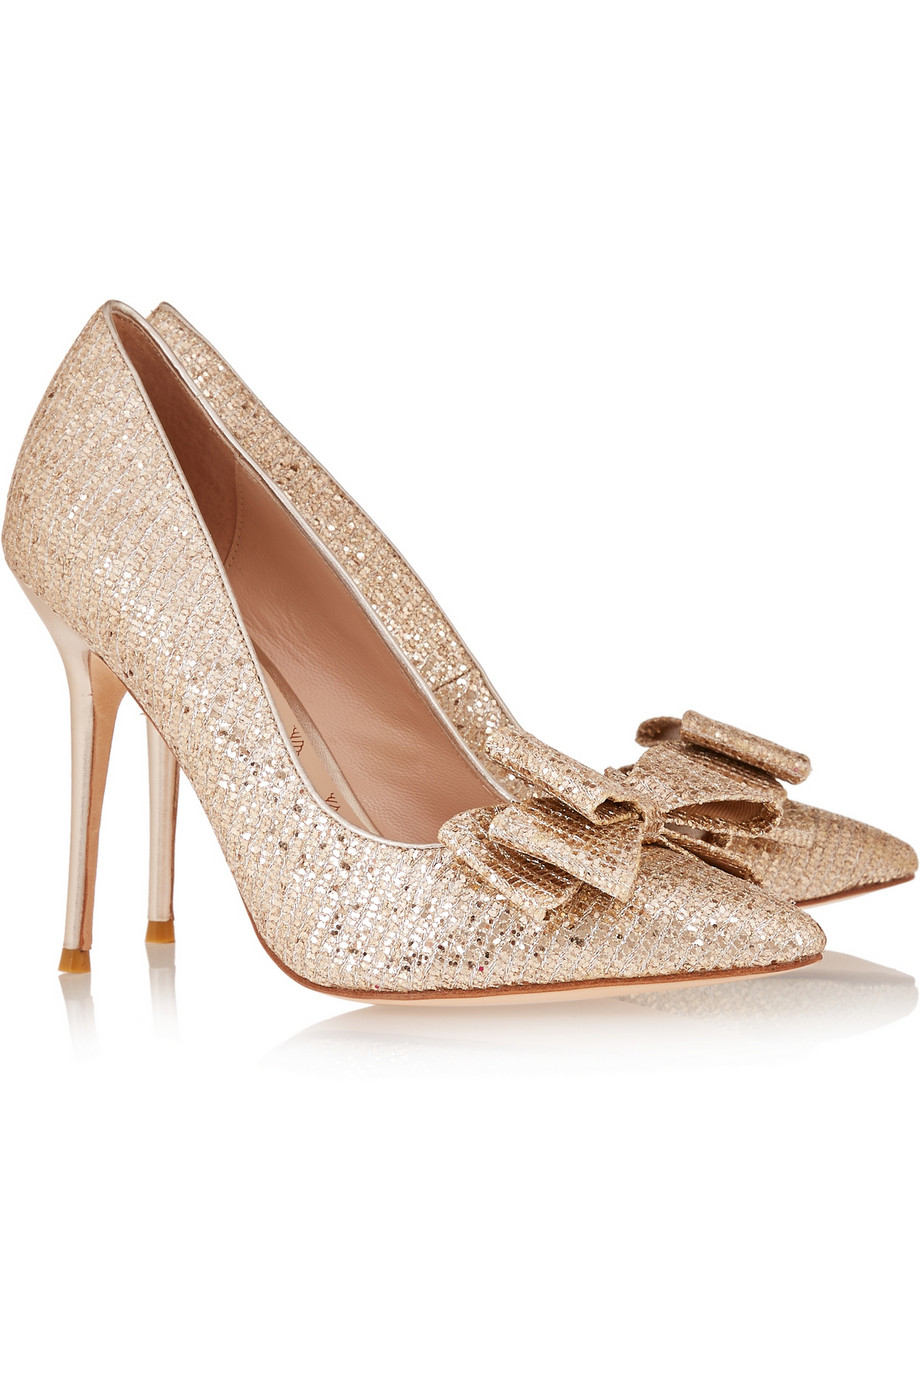 Lyst - Lucy choi Rose Bow-Embellished Glitter-Finished Pumps in ...